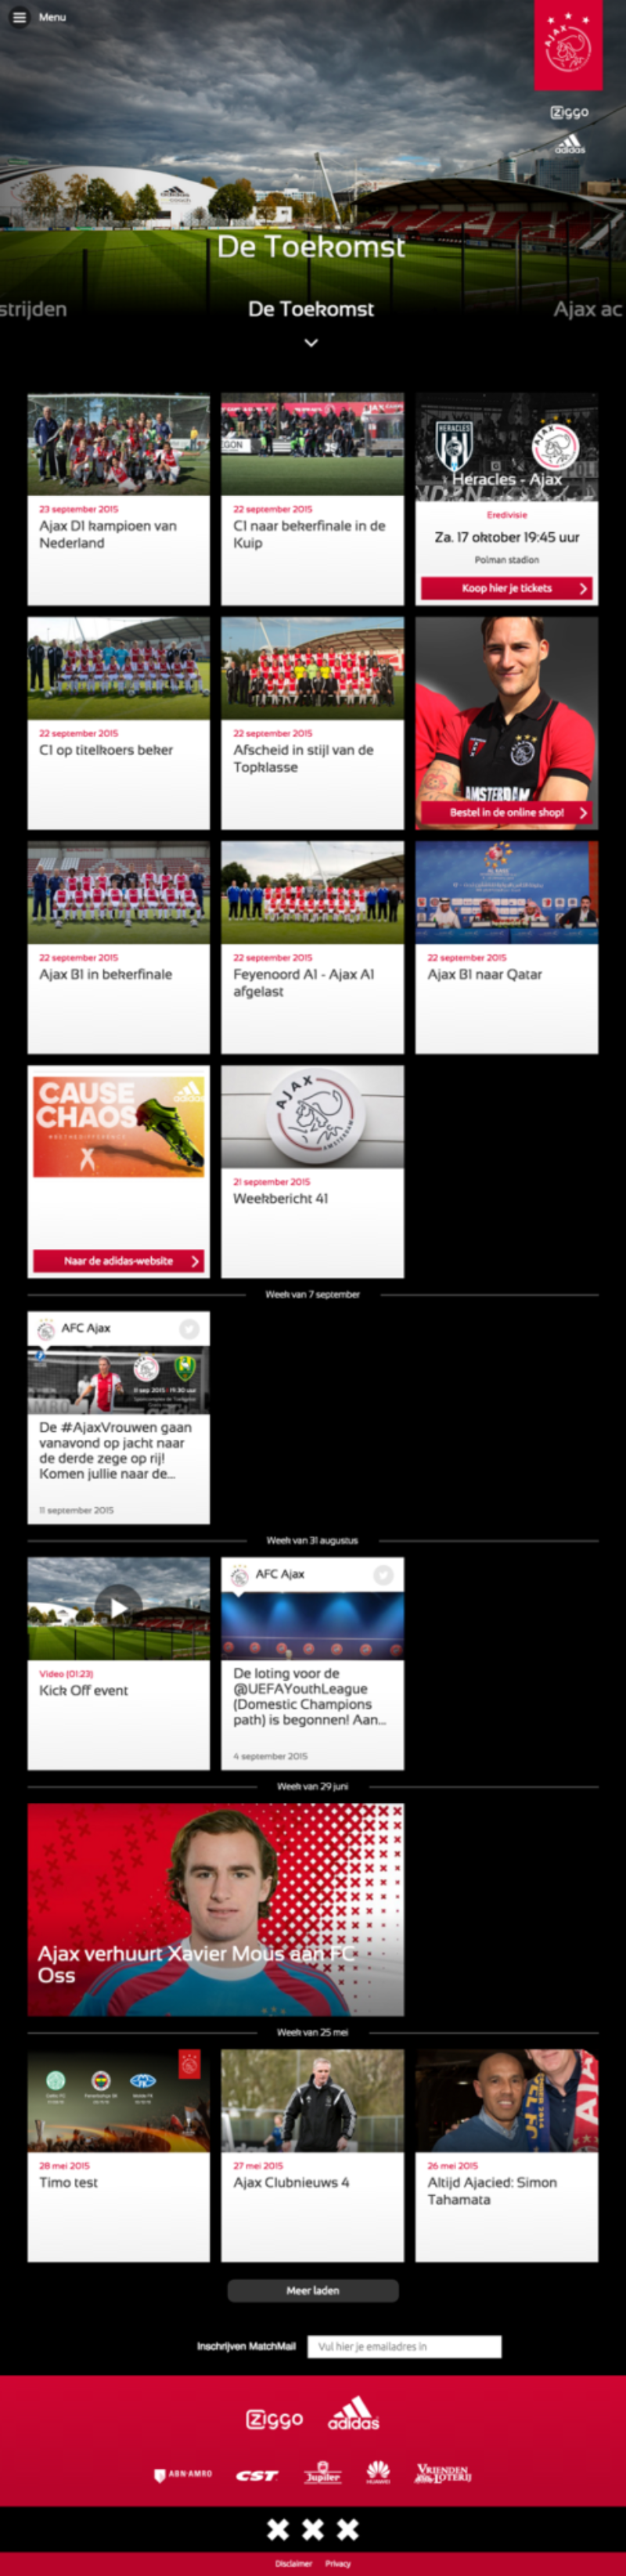 Ajax homepage overview